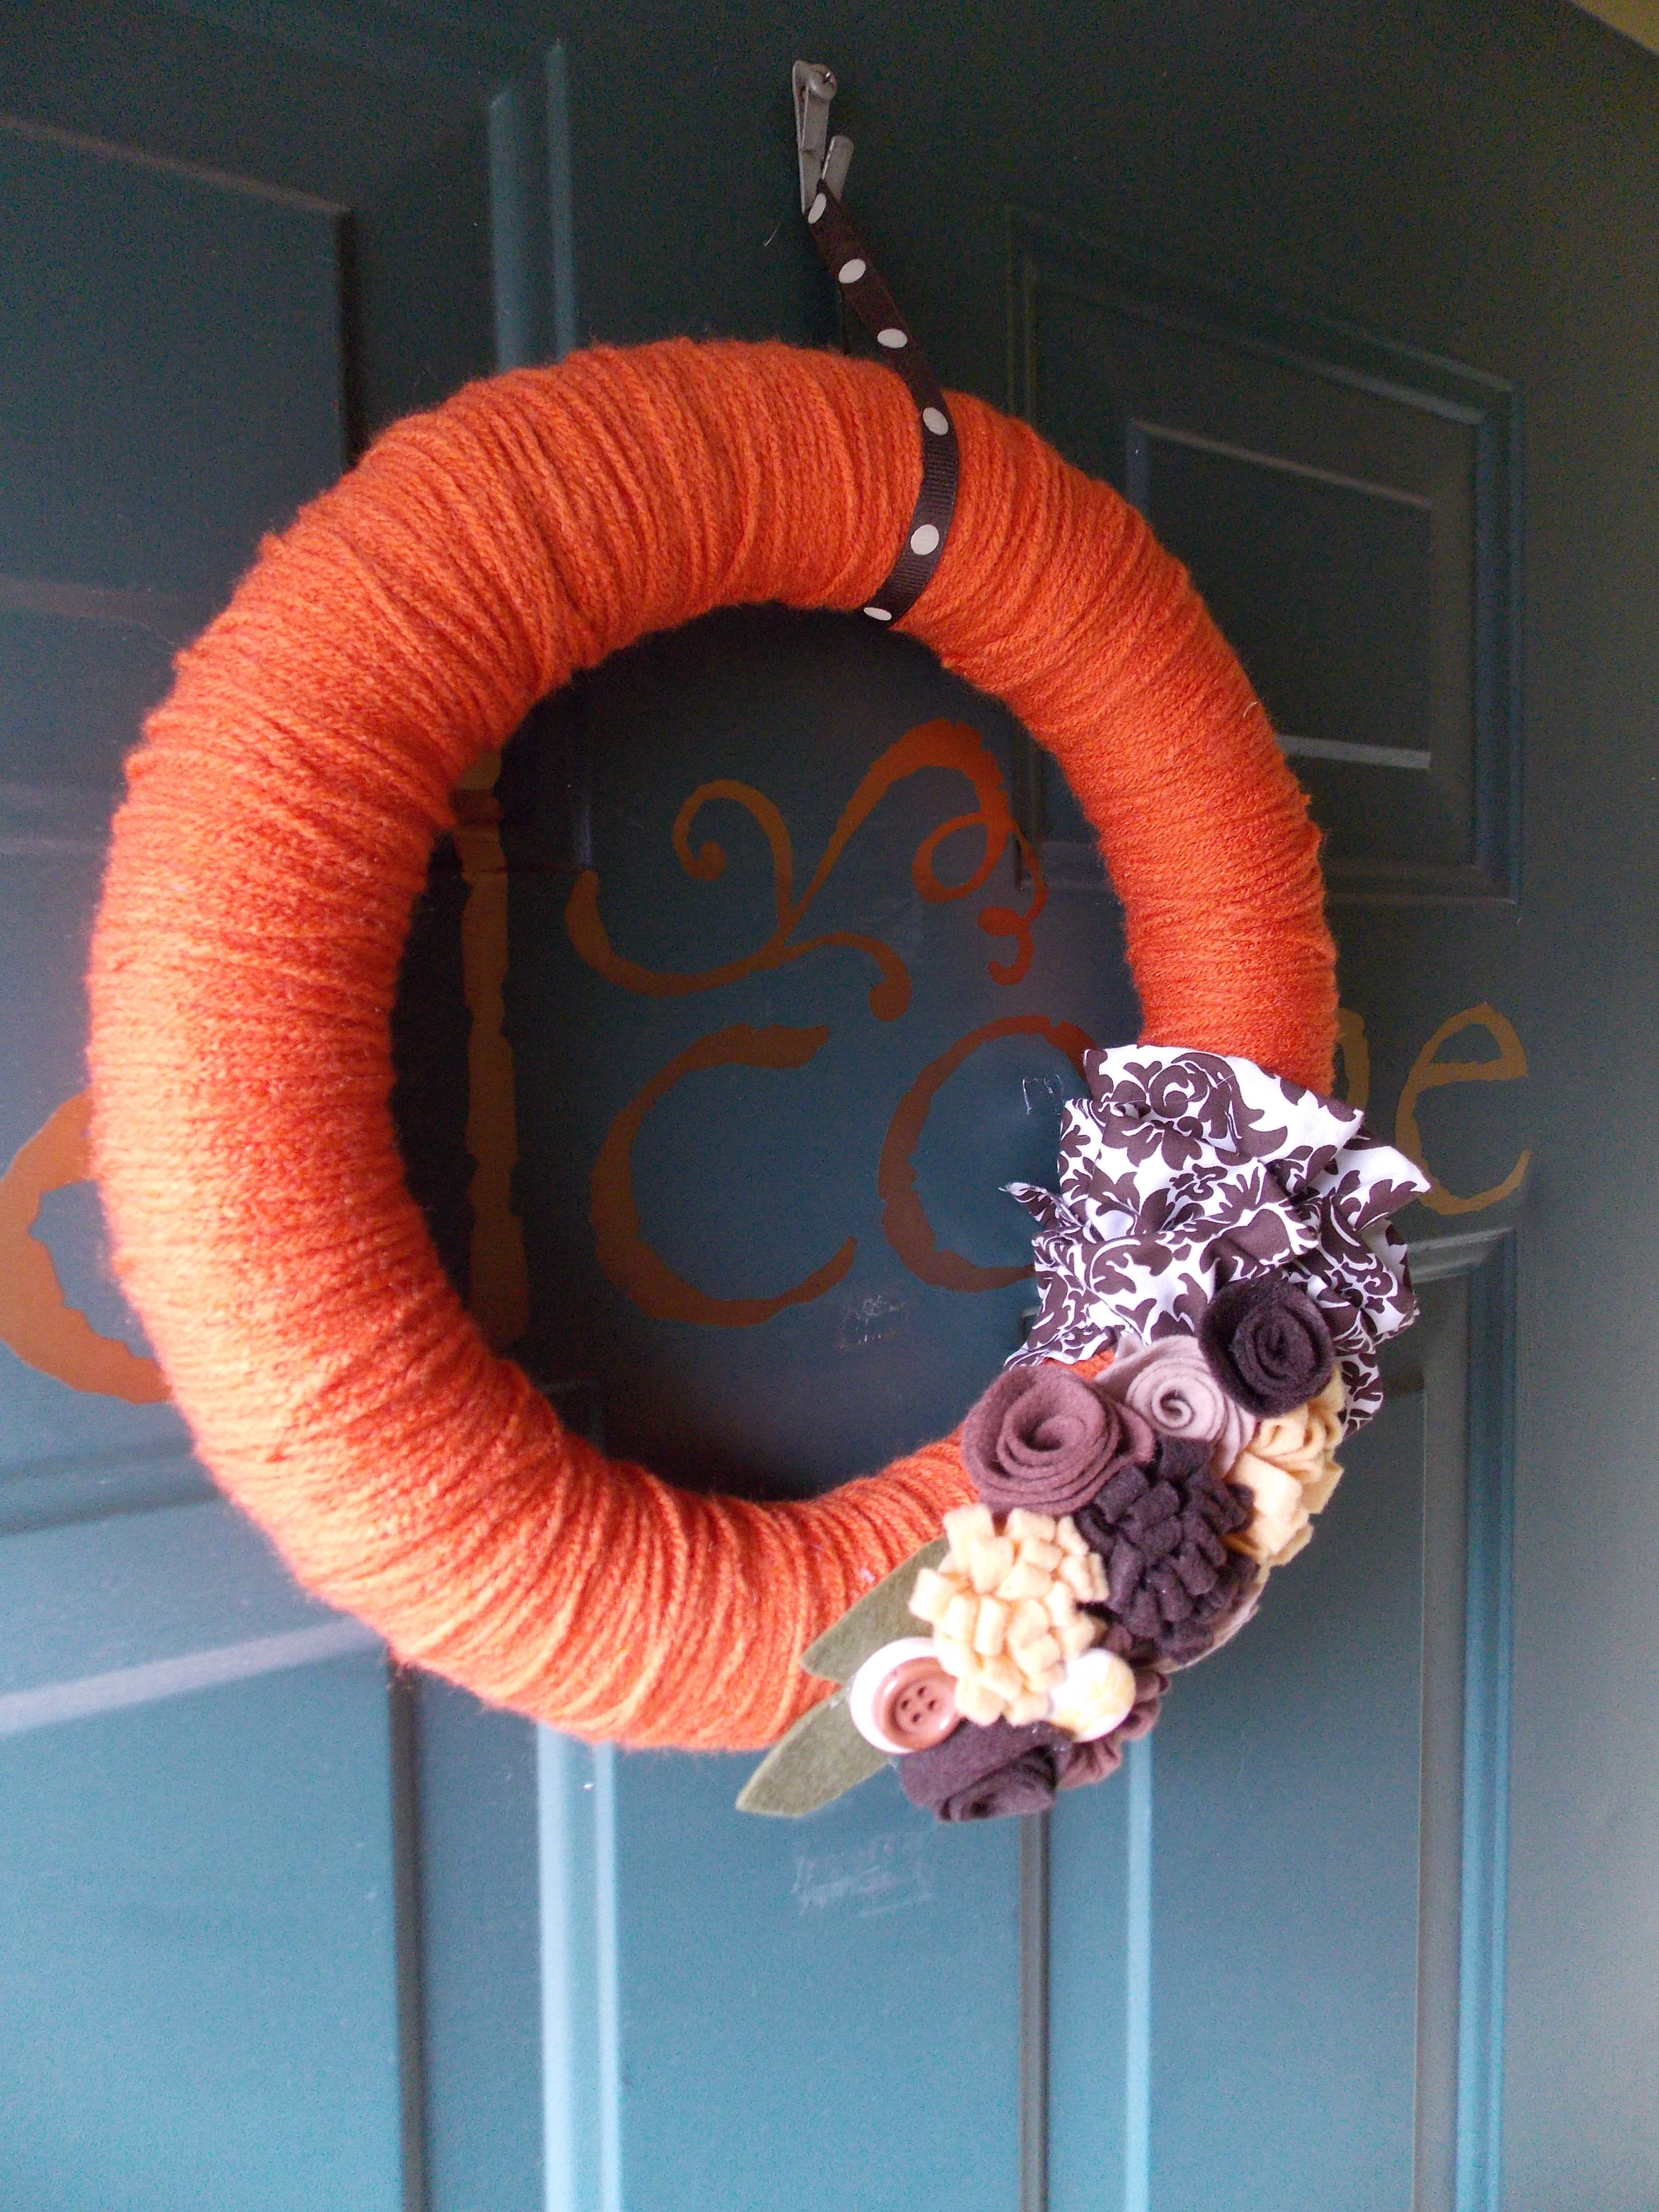 To make it, I simply wrapped a foam wreath form completely with yarn.